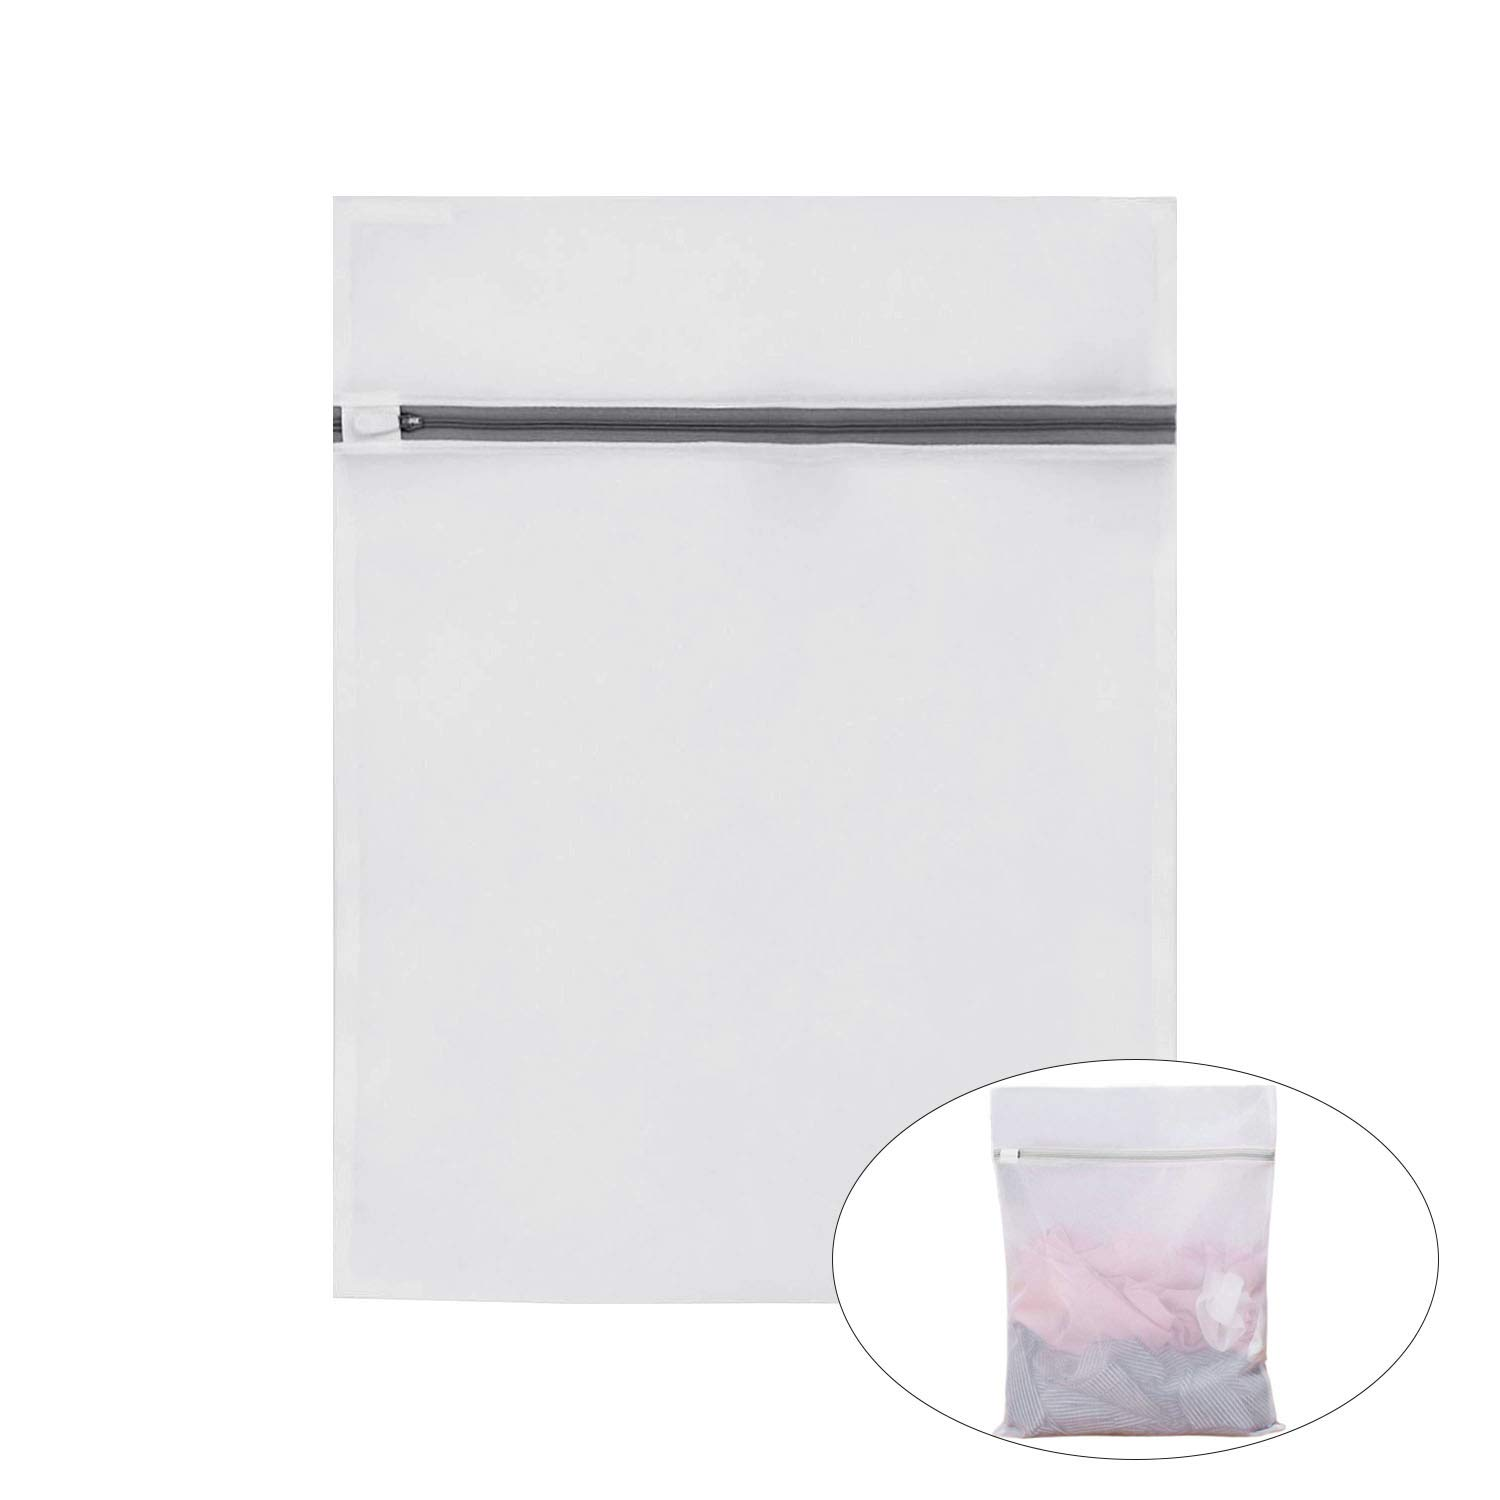 Mesh Laundry Lingerie Bag Zipper Closure Washing Machine and Dry Safe for Home Travel College Dorm White Cupidkiss Laundry Wash Bags